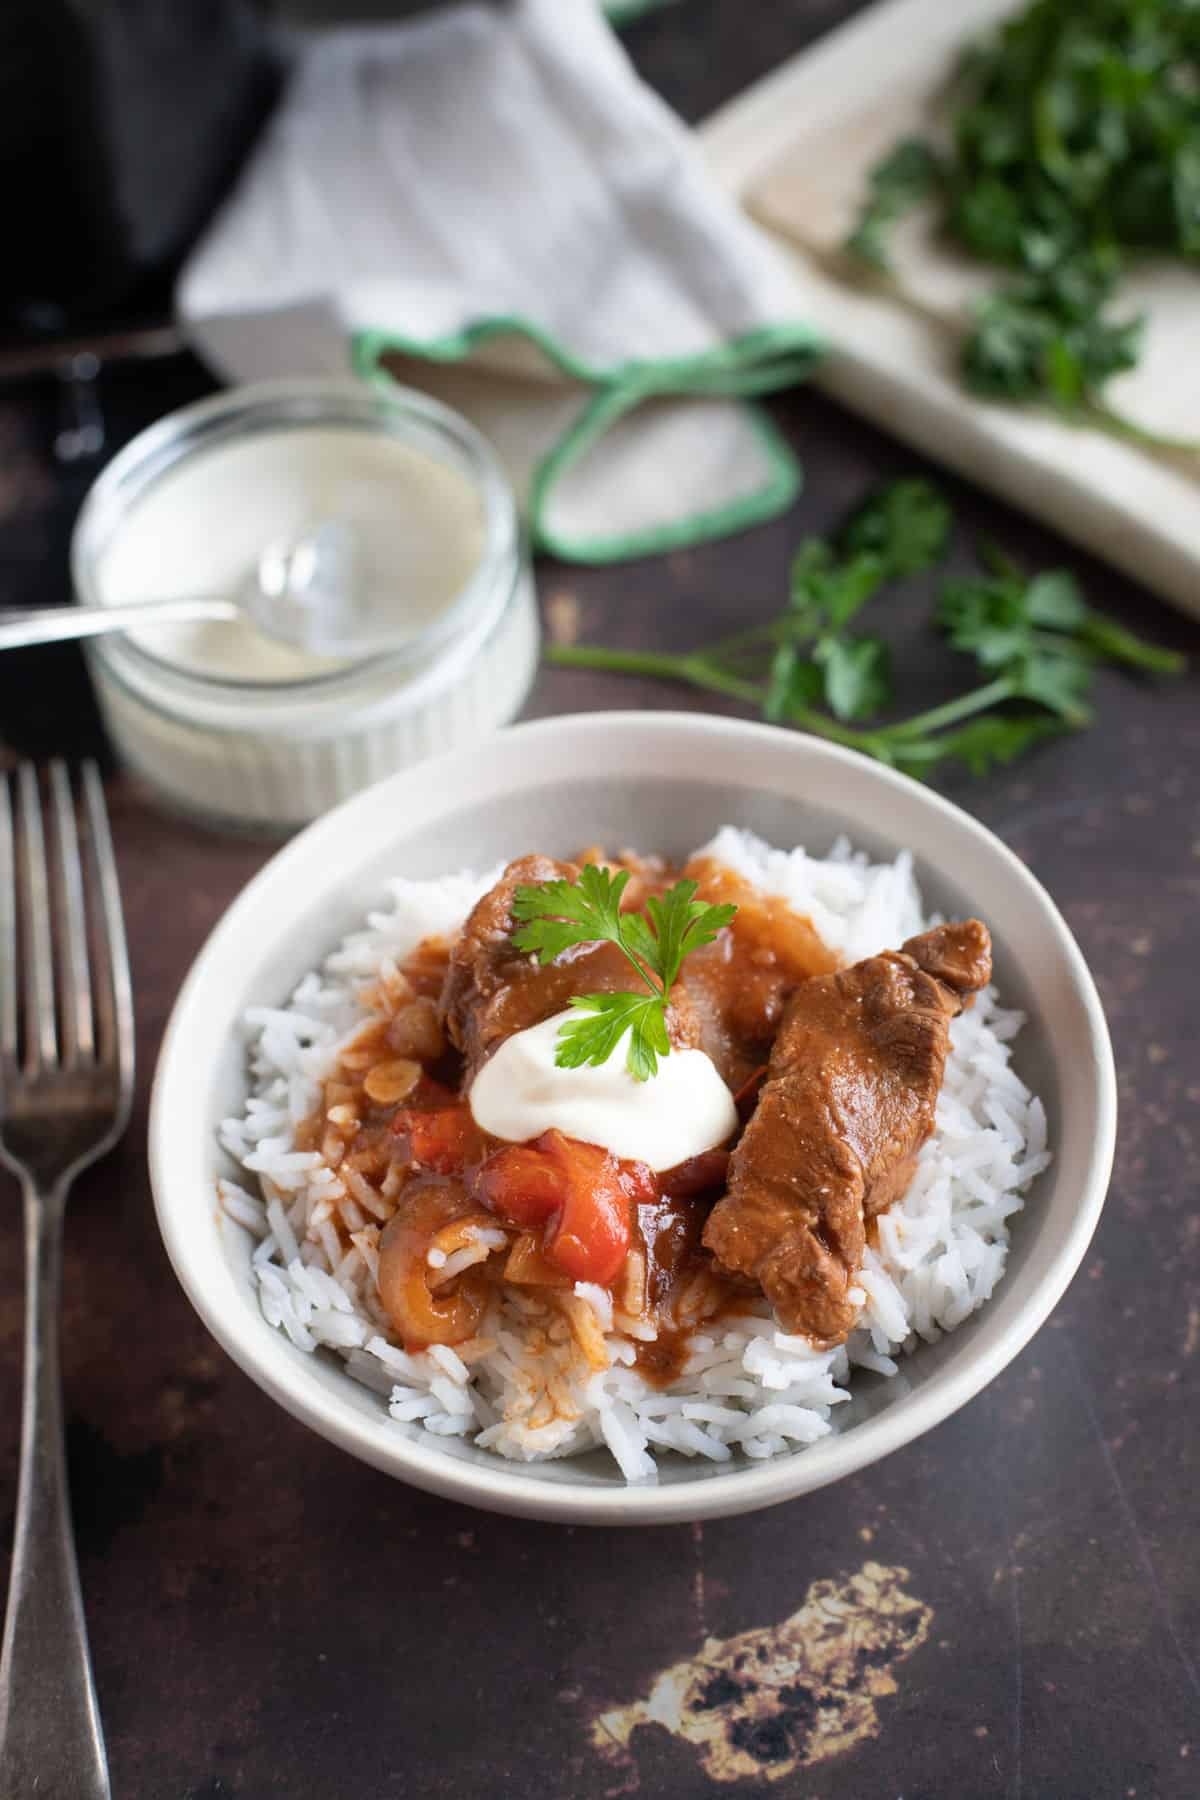 Slow cooker beef goulash served on a bed of rice with soured cream and parsley.